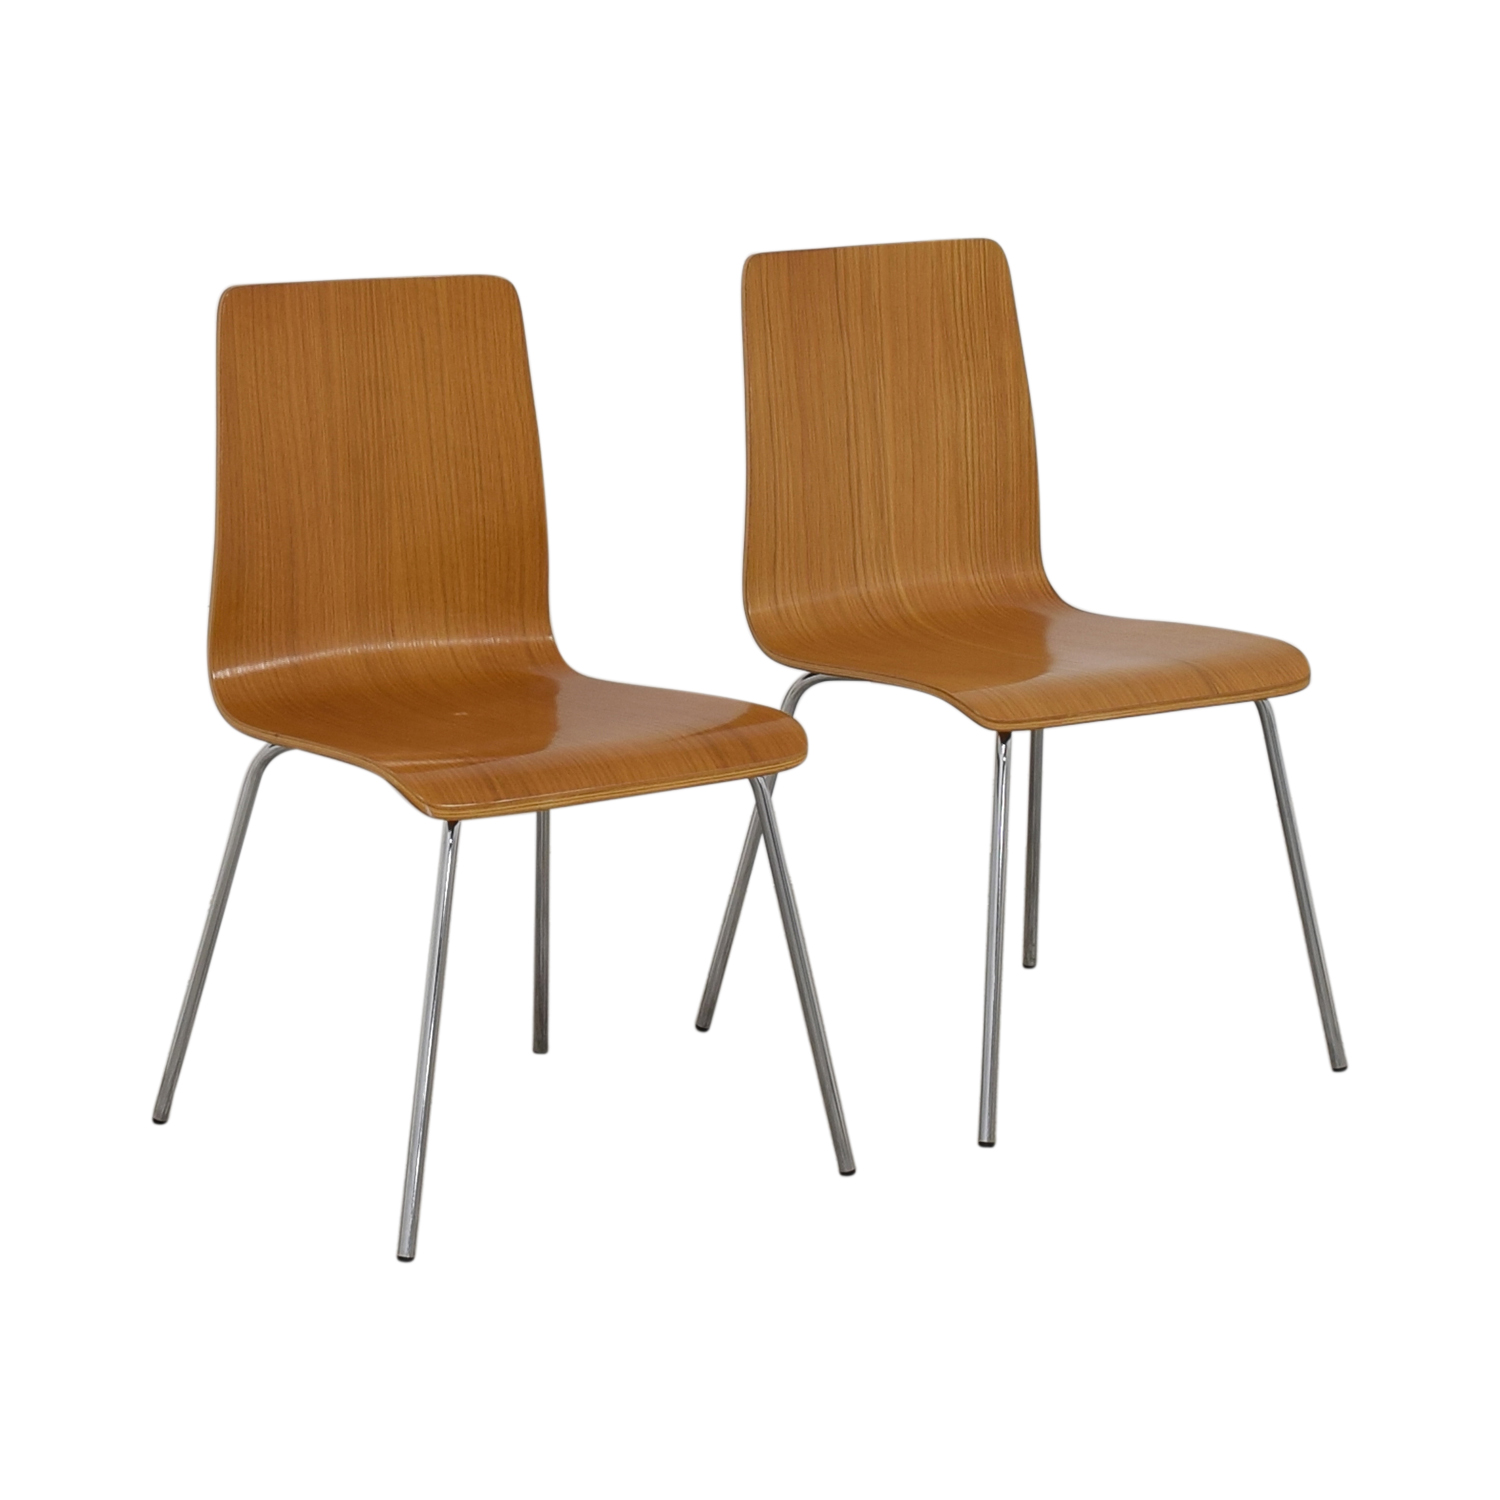 CB2 CB2 Brown Grain Accent Dining Chairs used